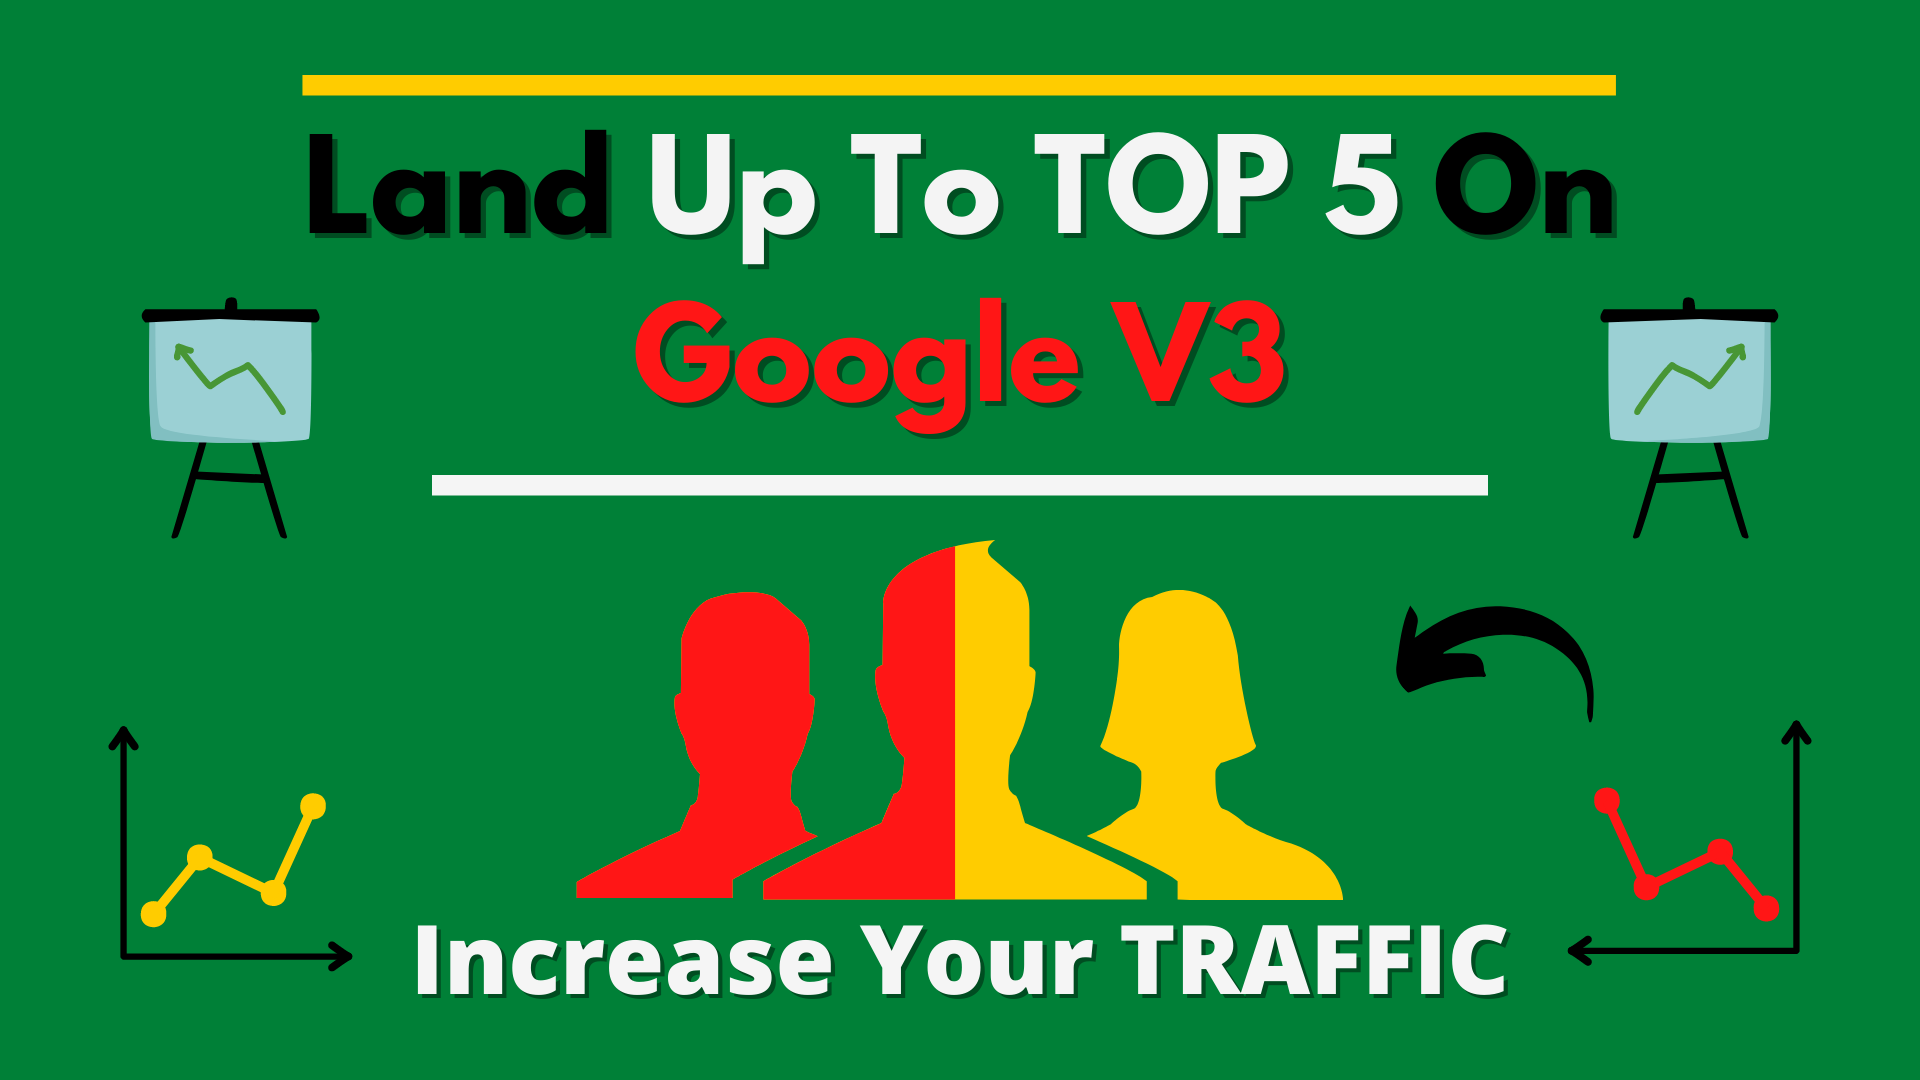 Land Up To Top 5 On Google V3 - WEB2.0 Blogs + Pyramid